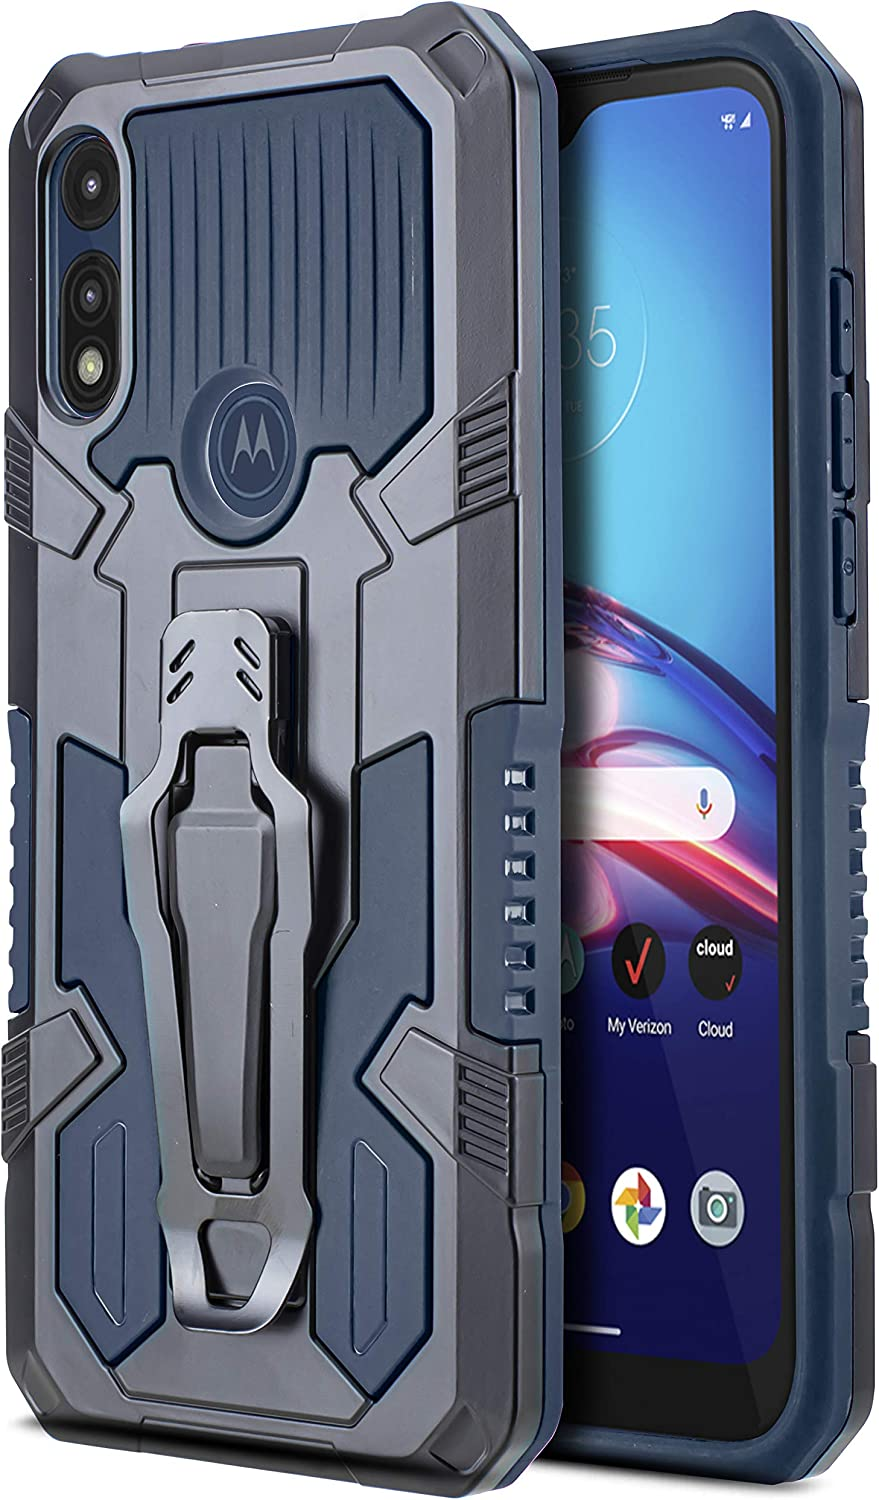 CasemartUSA Phone Case for [Motorola Moto E (2020)], [Apex Series][Navy Blue] Shockproof Cover with Belt Clip and Kickstand for Moto E (2020) T-Mobile, Metro, Boost, Consumer Cellular, Simple Mobile